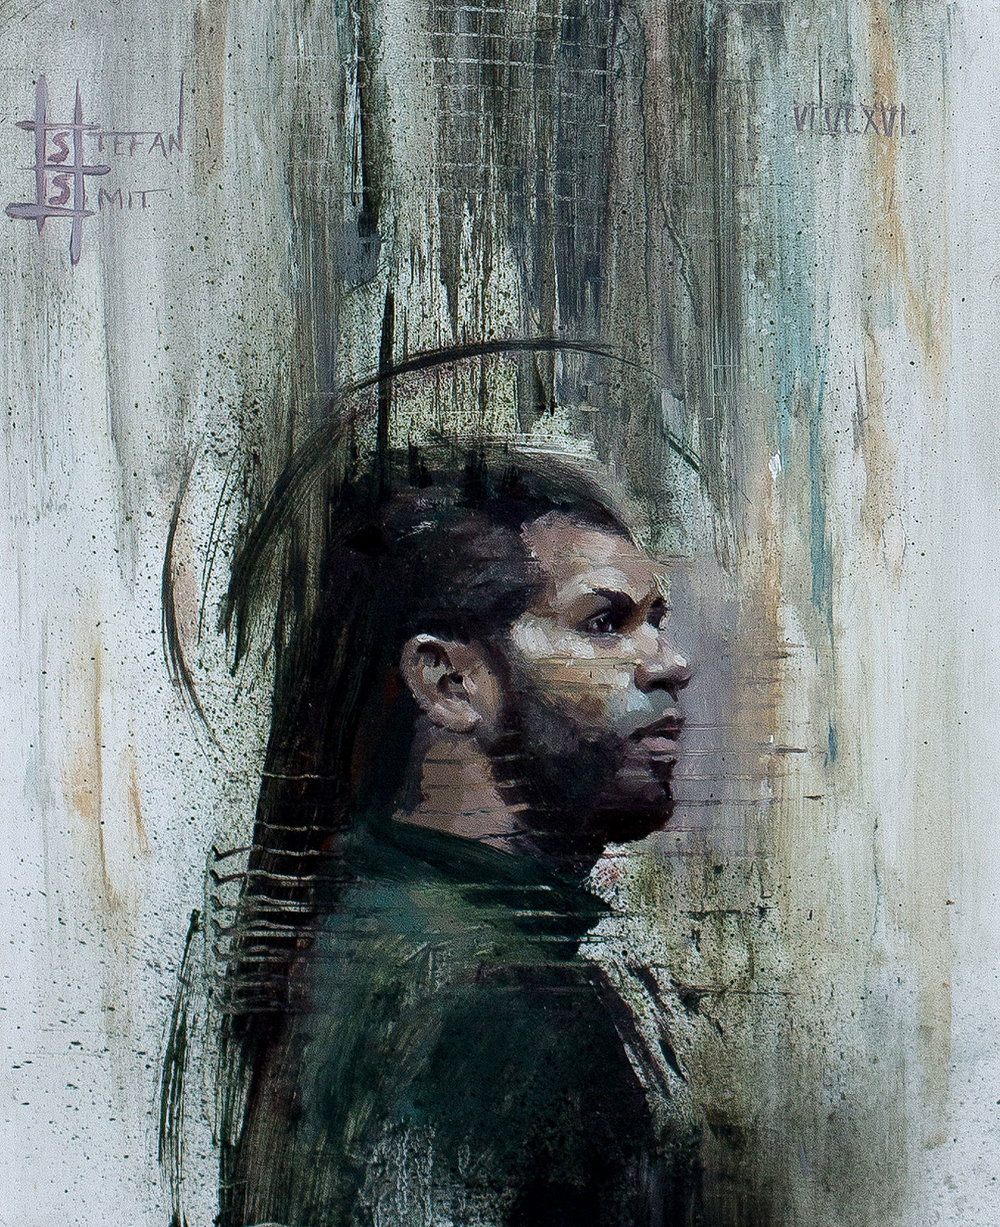 ' Collected Thought' (Series 1-4)'   Stefan Smit  Oil paint on archival panel  210 x 255 x 30 mm  R 6 670. 00 excl. vat (each)